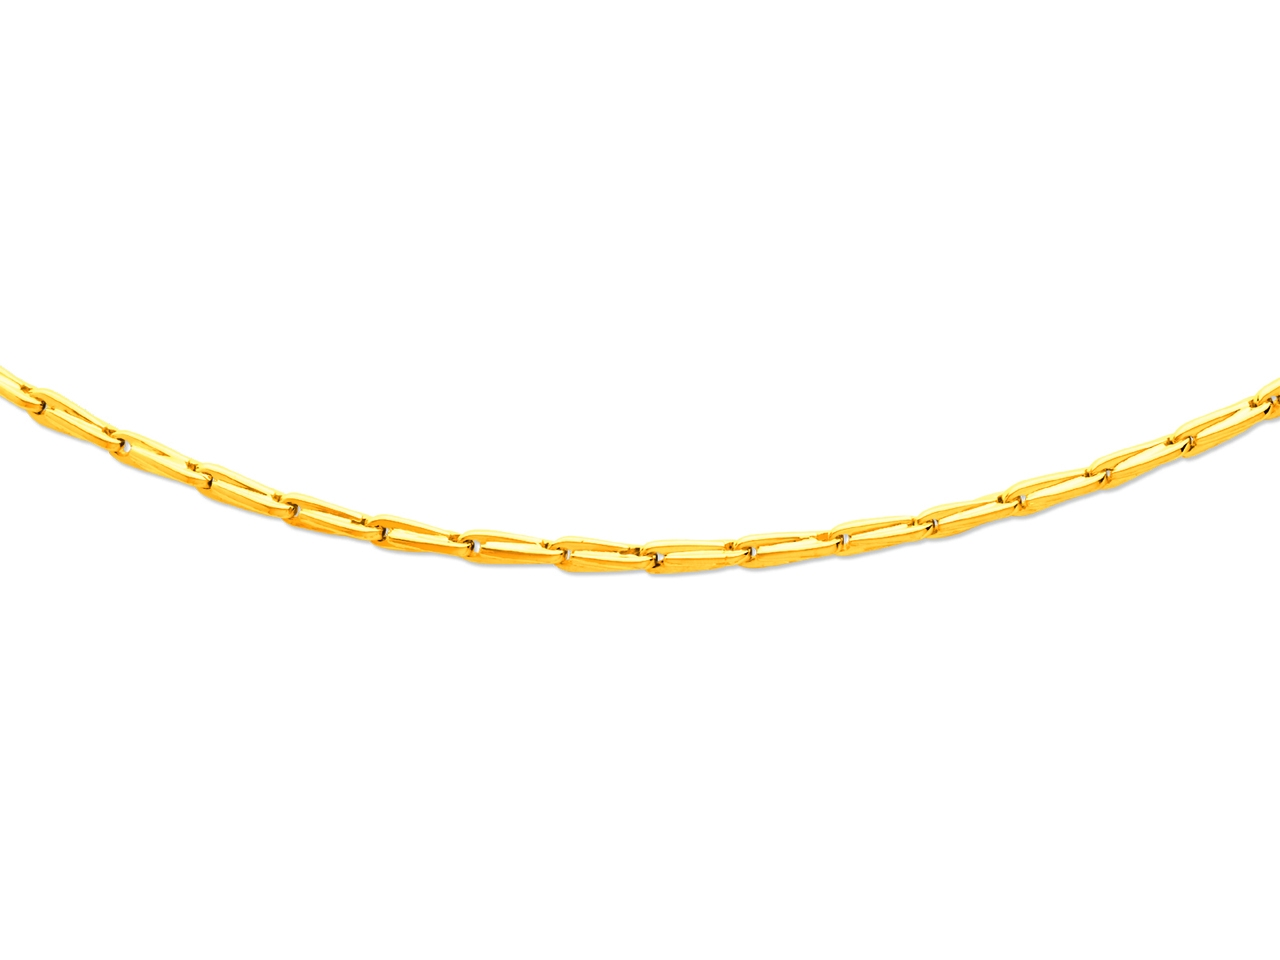 Collier Homme maille Epi 3,6 mm, 55 cm, Or jaune 18k